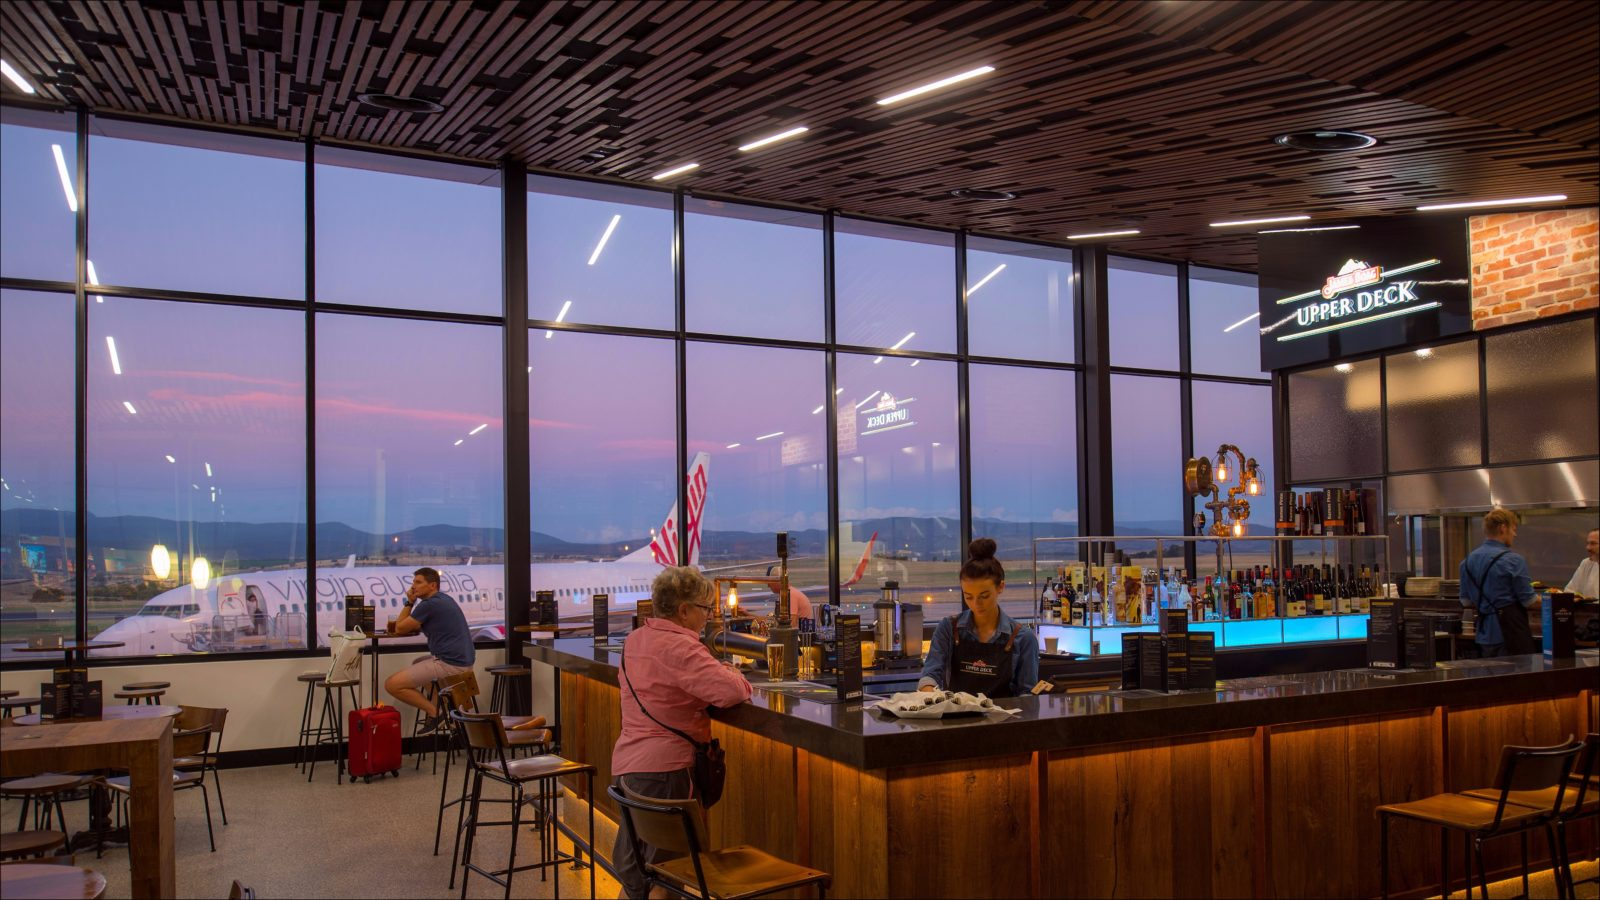 A view at dusk to the picturesque background from Boags Upper Deck Bar & Restaurant